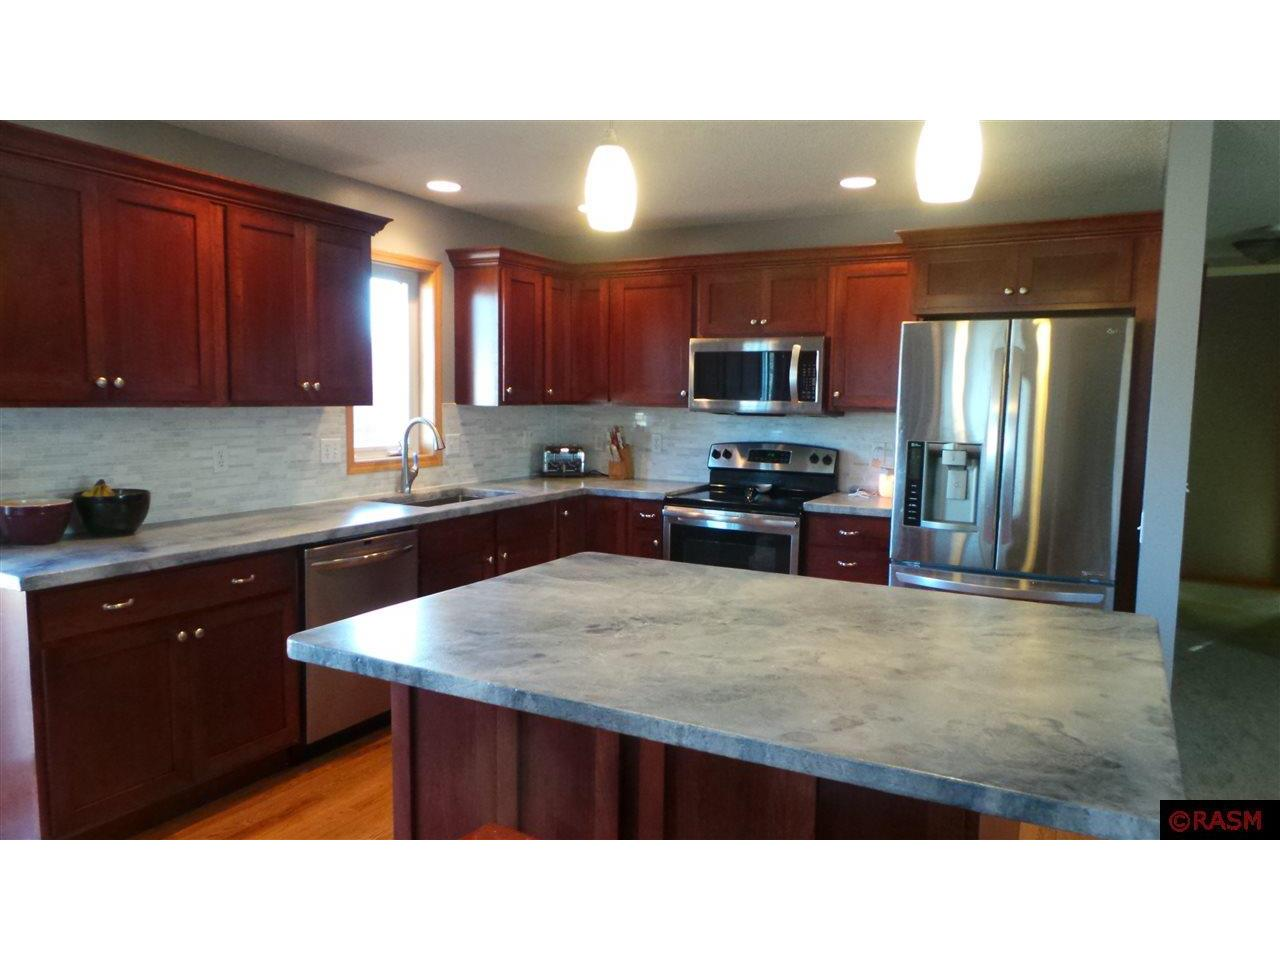 Newly remodeled with custom concrete countertops and brand new appliances